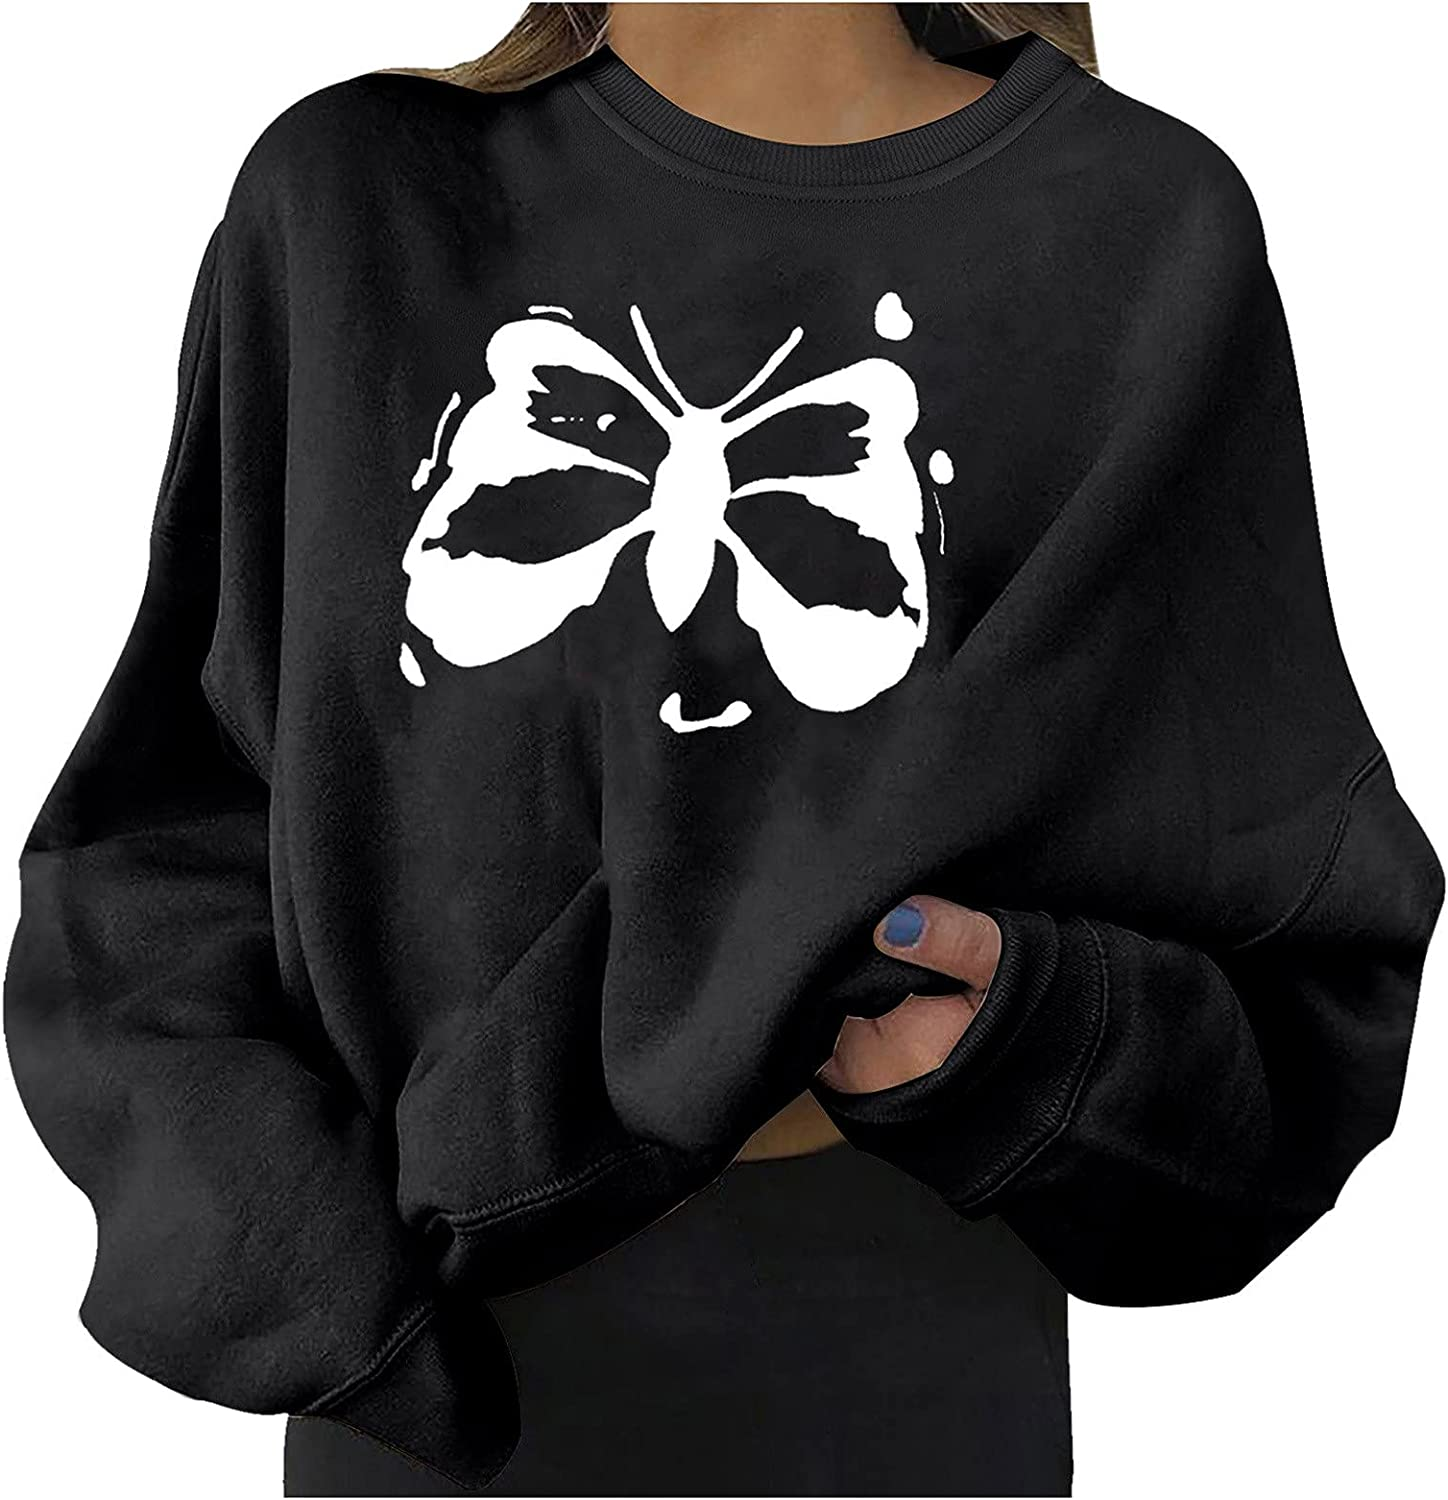 Womens Butterfly Printted Pullover Jumper Plus Size Baggy Solid Lantern Long Sleeve Sweatshirt Blouse Tops